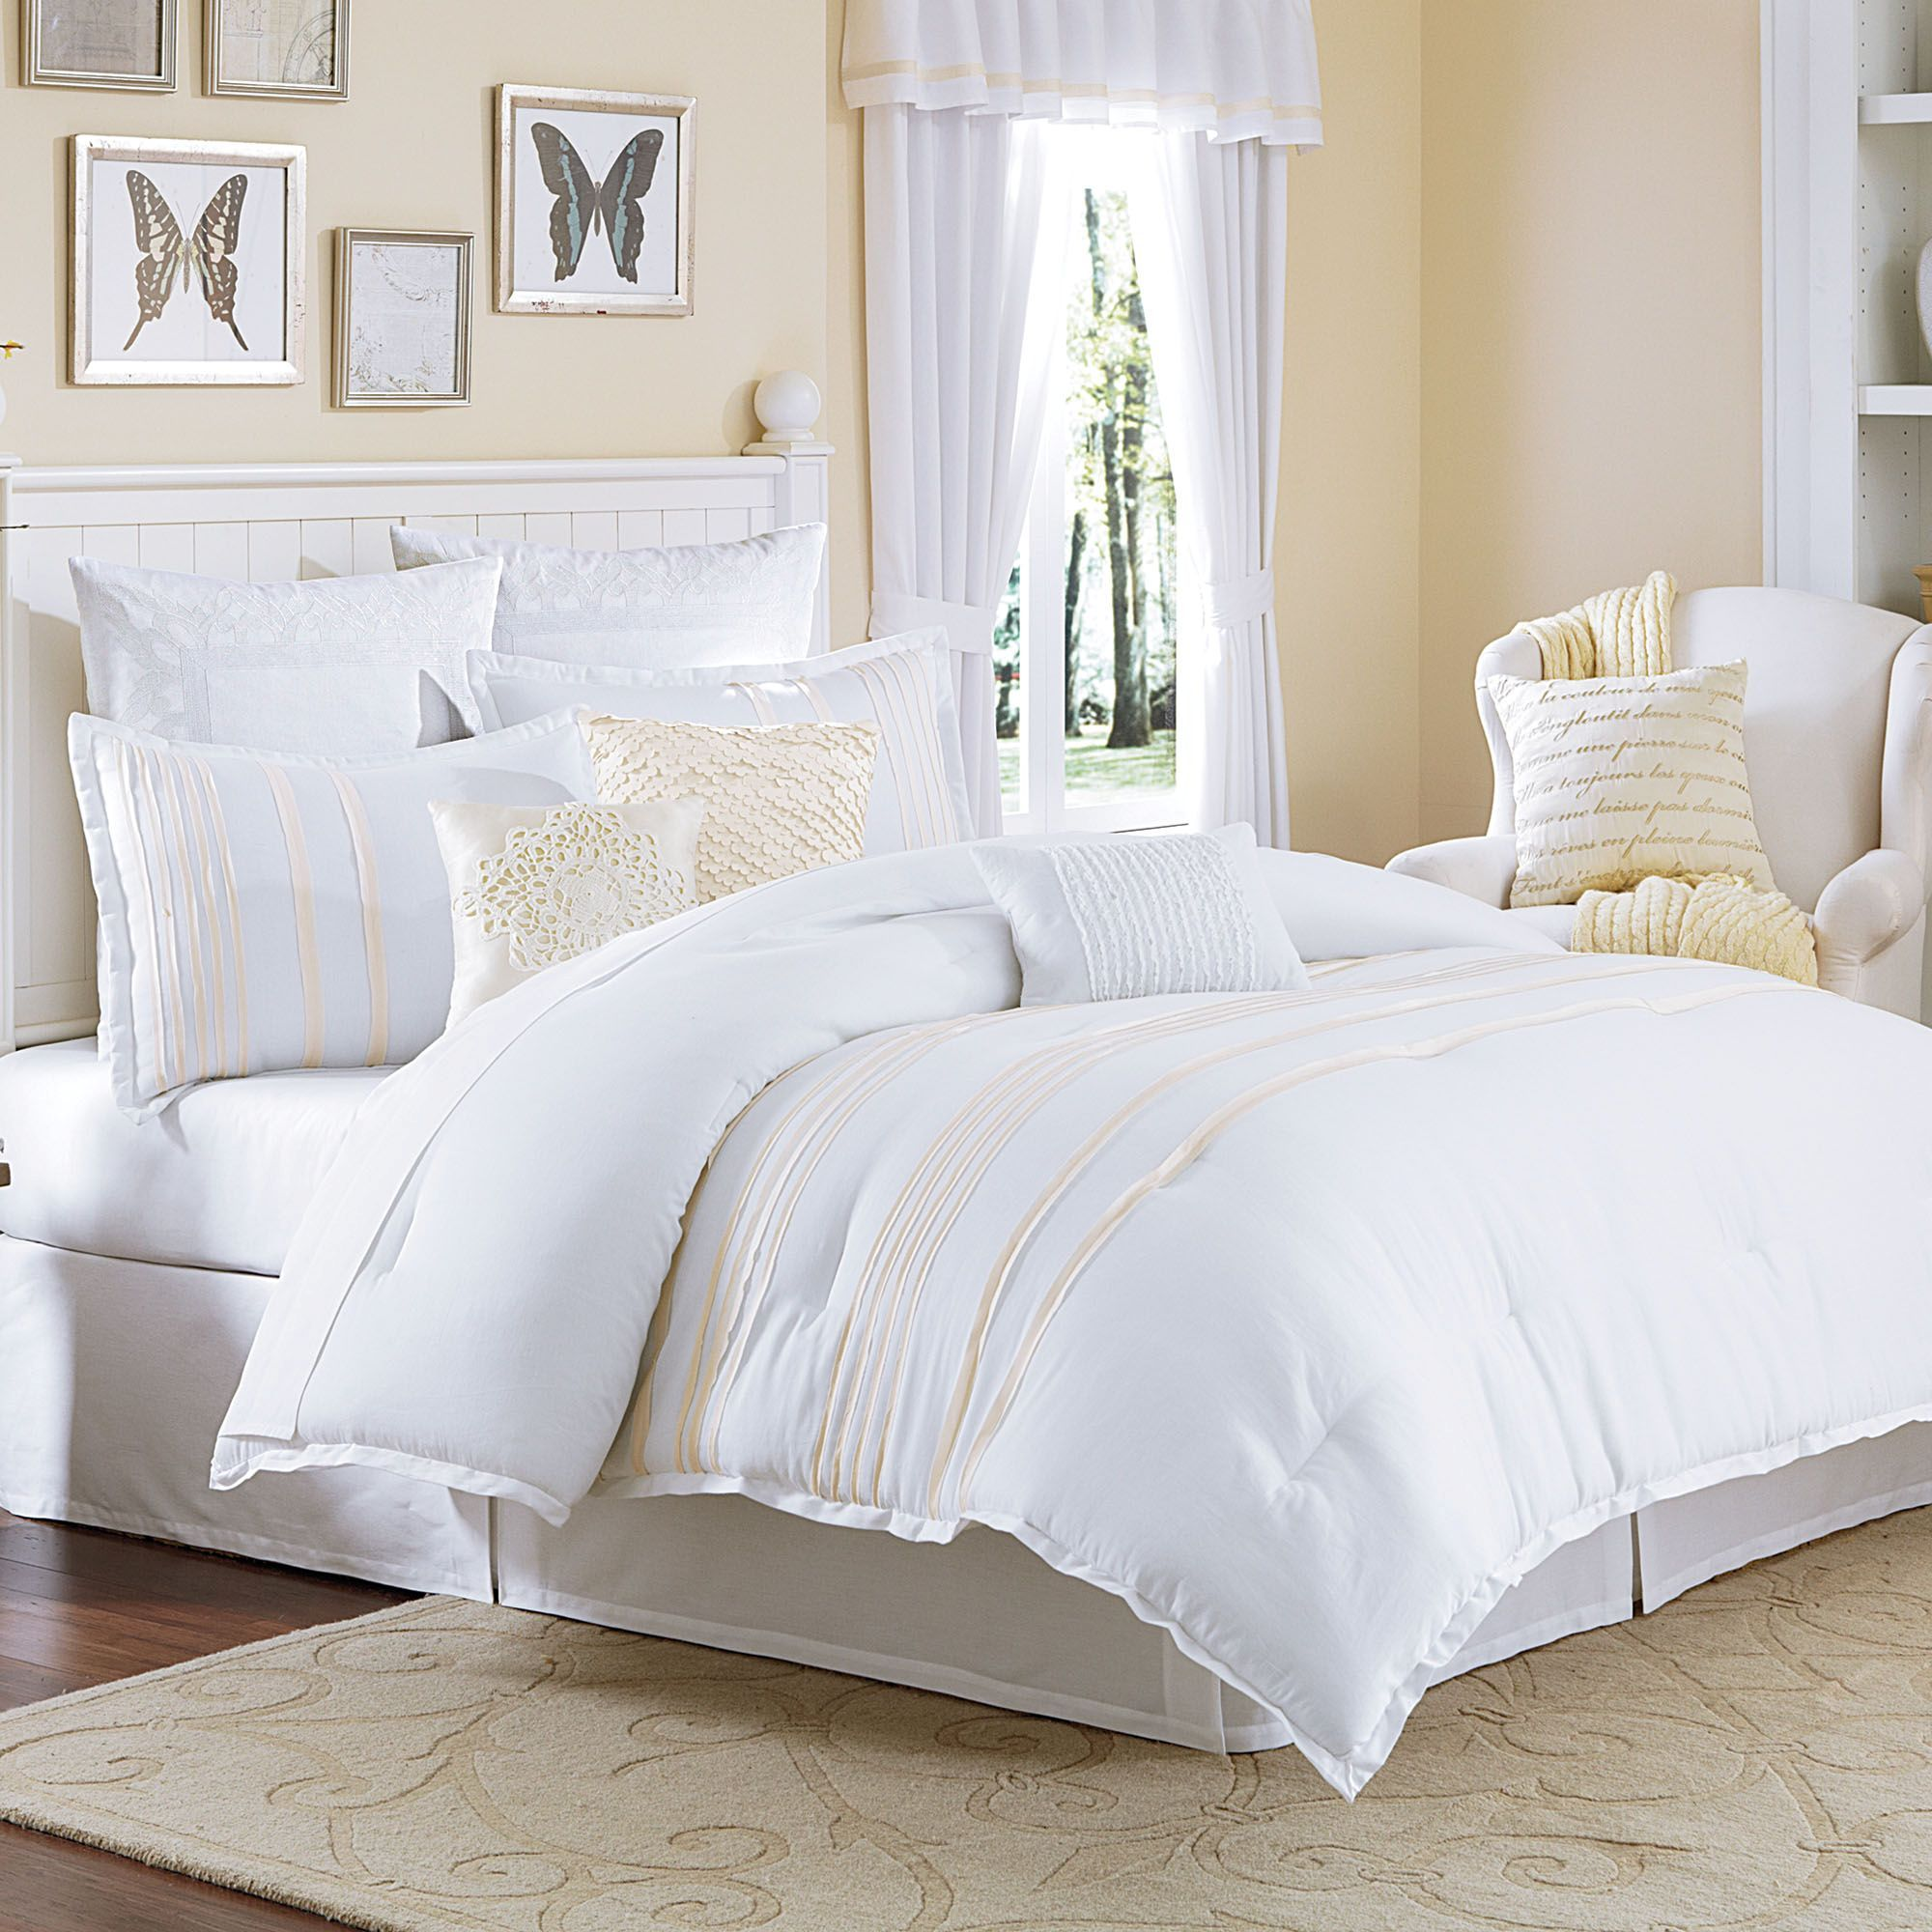 set sets white of beautiful home decoration forter comforters comforter lovely bed bedding curtains idea with decor